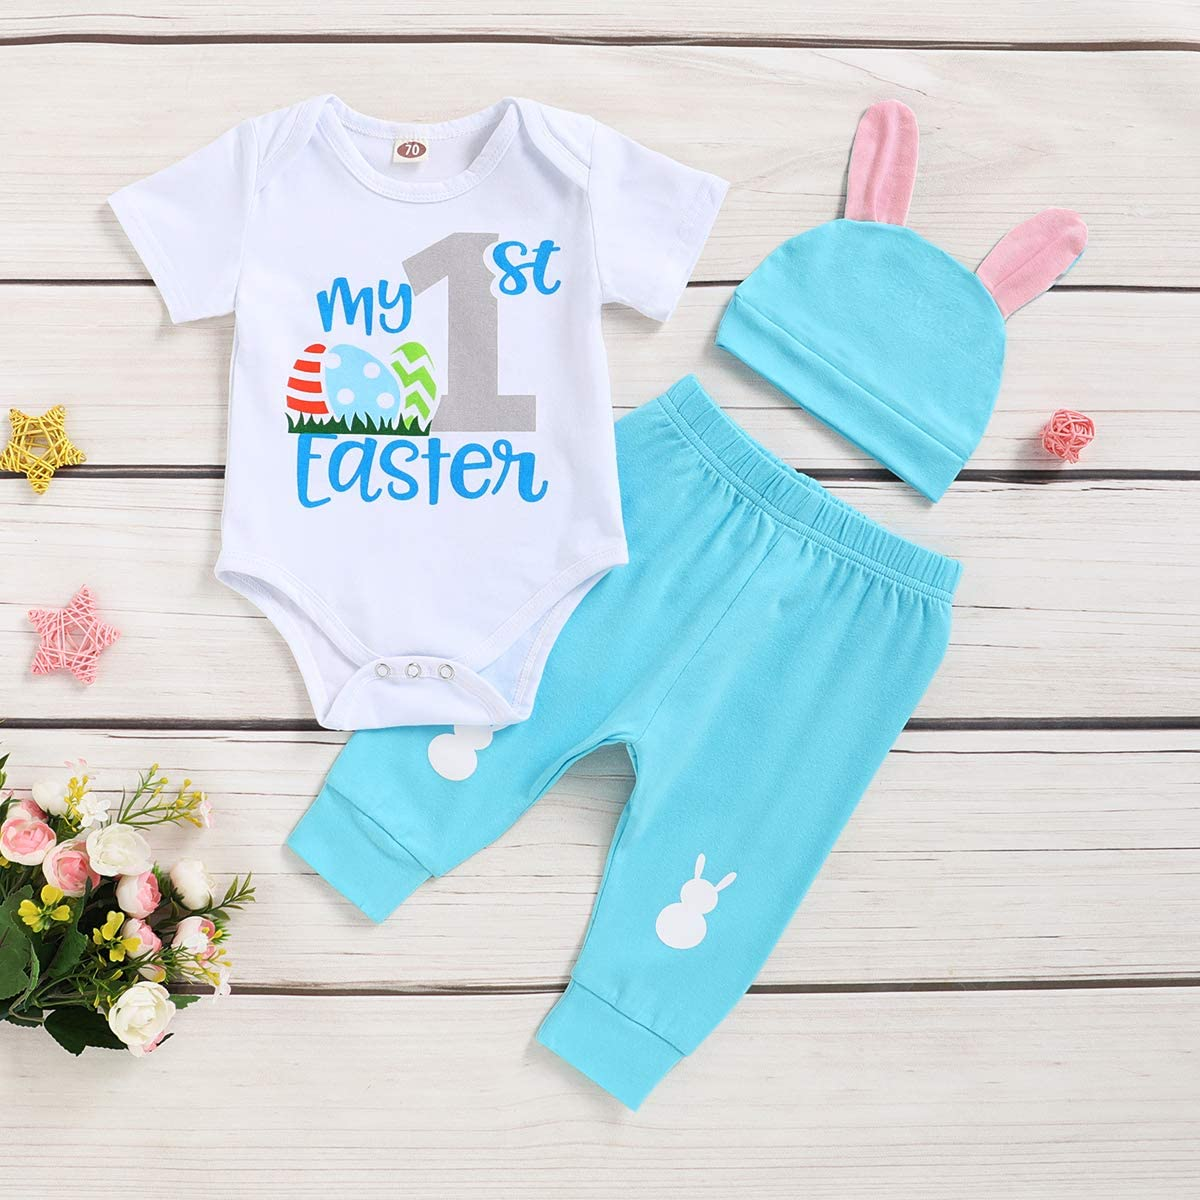 Baby Boys Easter Outfit Infant Boy My First Easter Romper + Rabbit Cardigan + Pants 3PCs Outfits